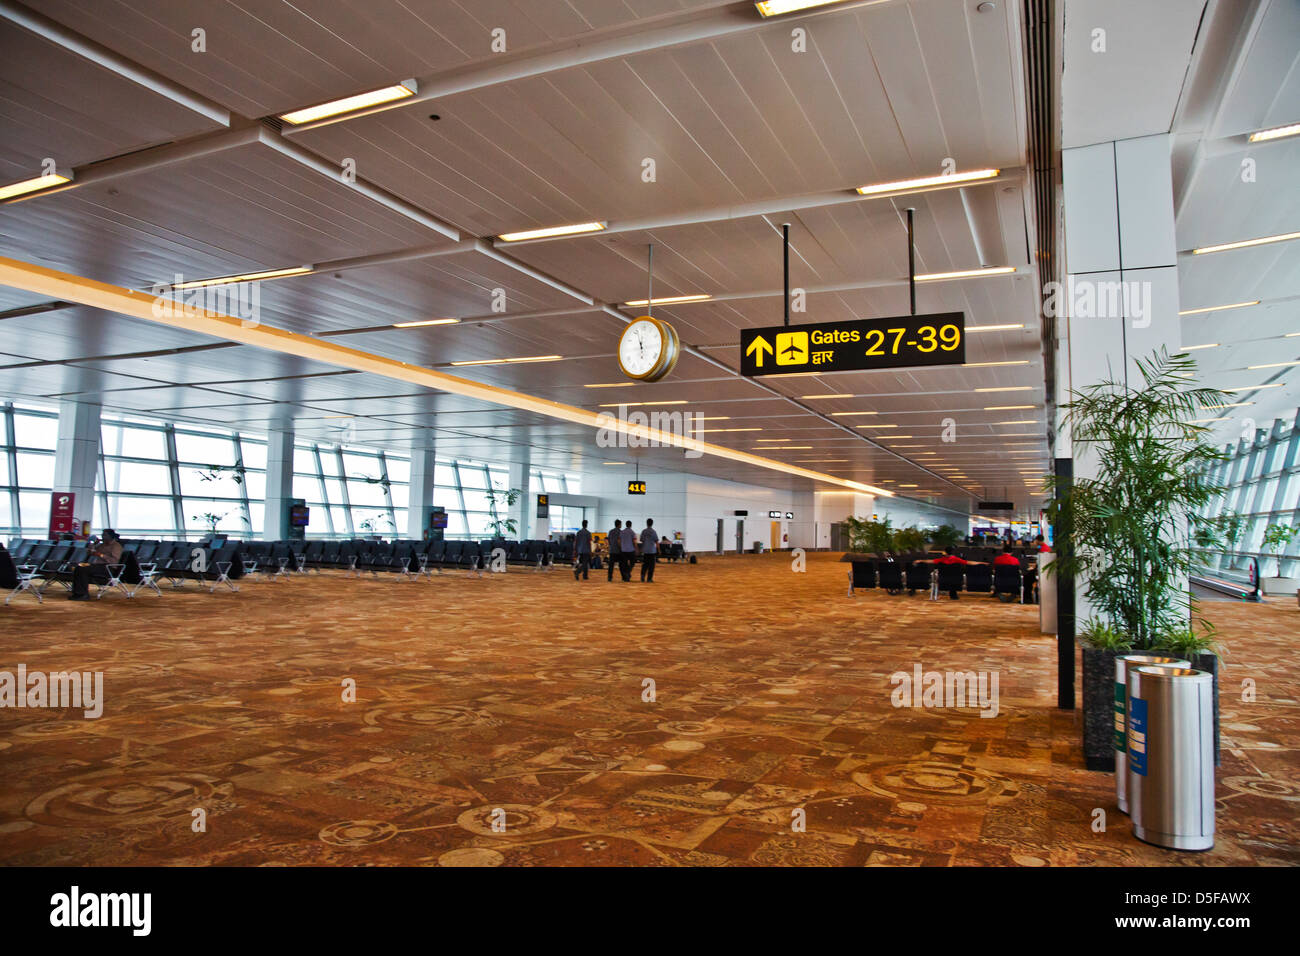 Interiors of Shimla Airport, Shimla, Himachal Pradesh, India - Stock Image